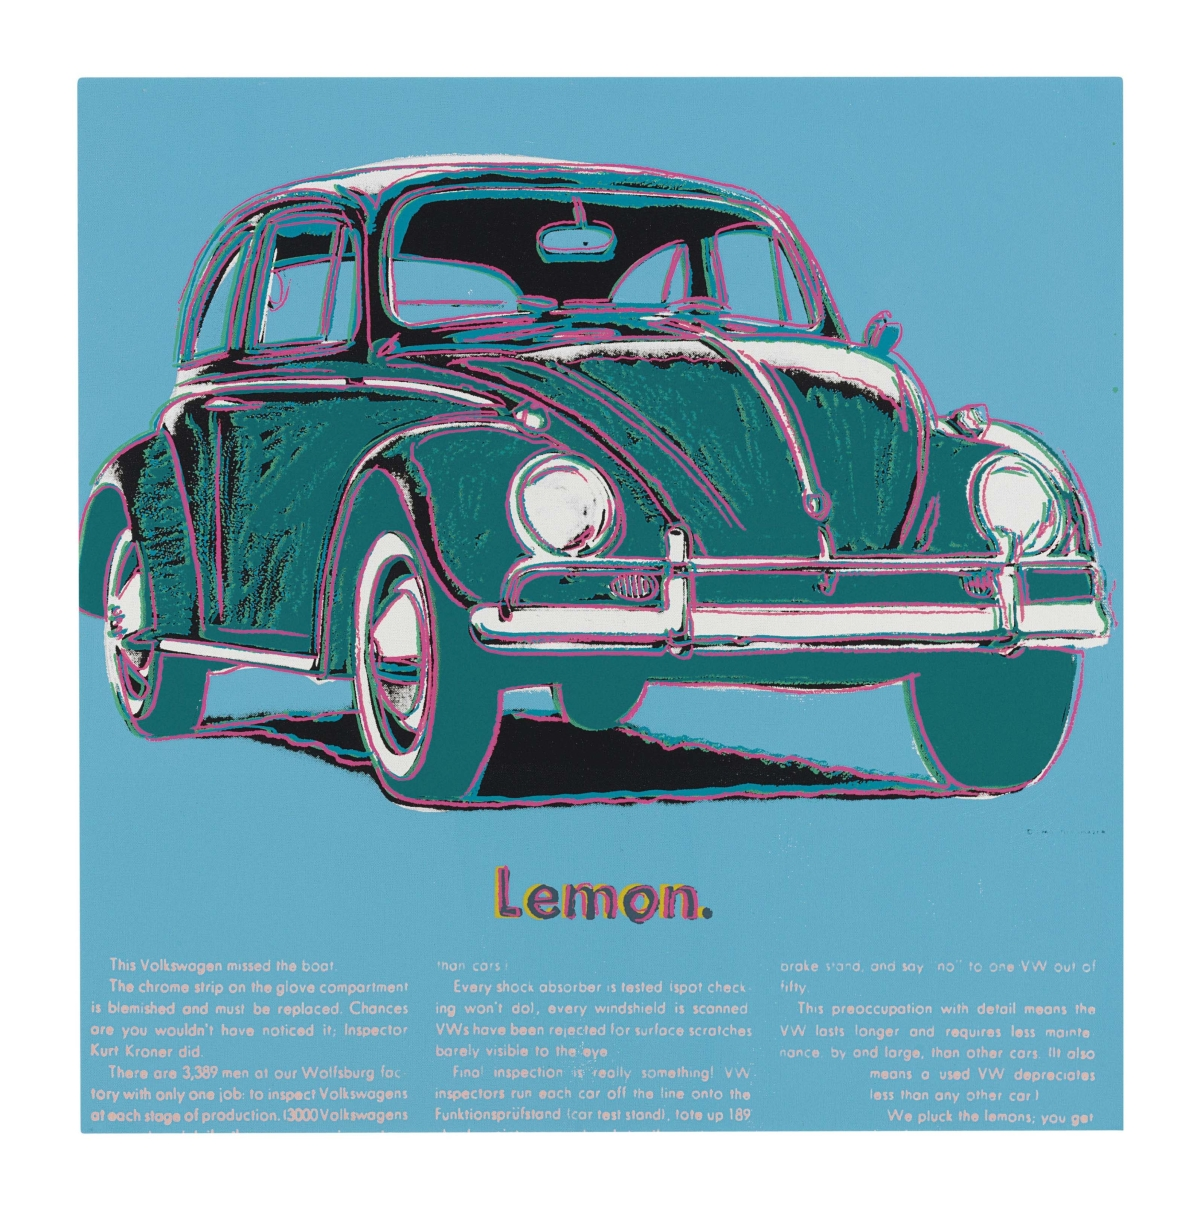 Andy Warhol's ad for the Beetle